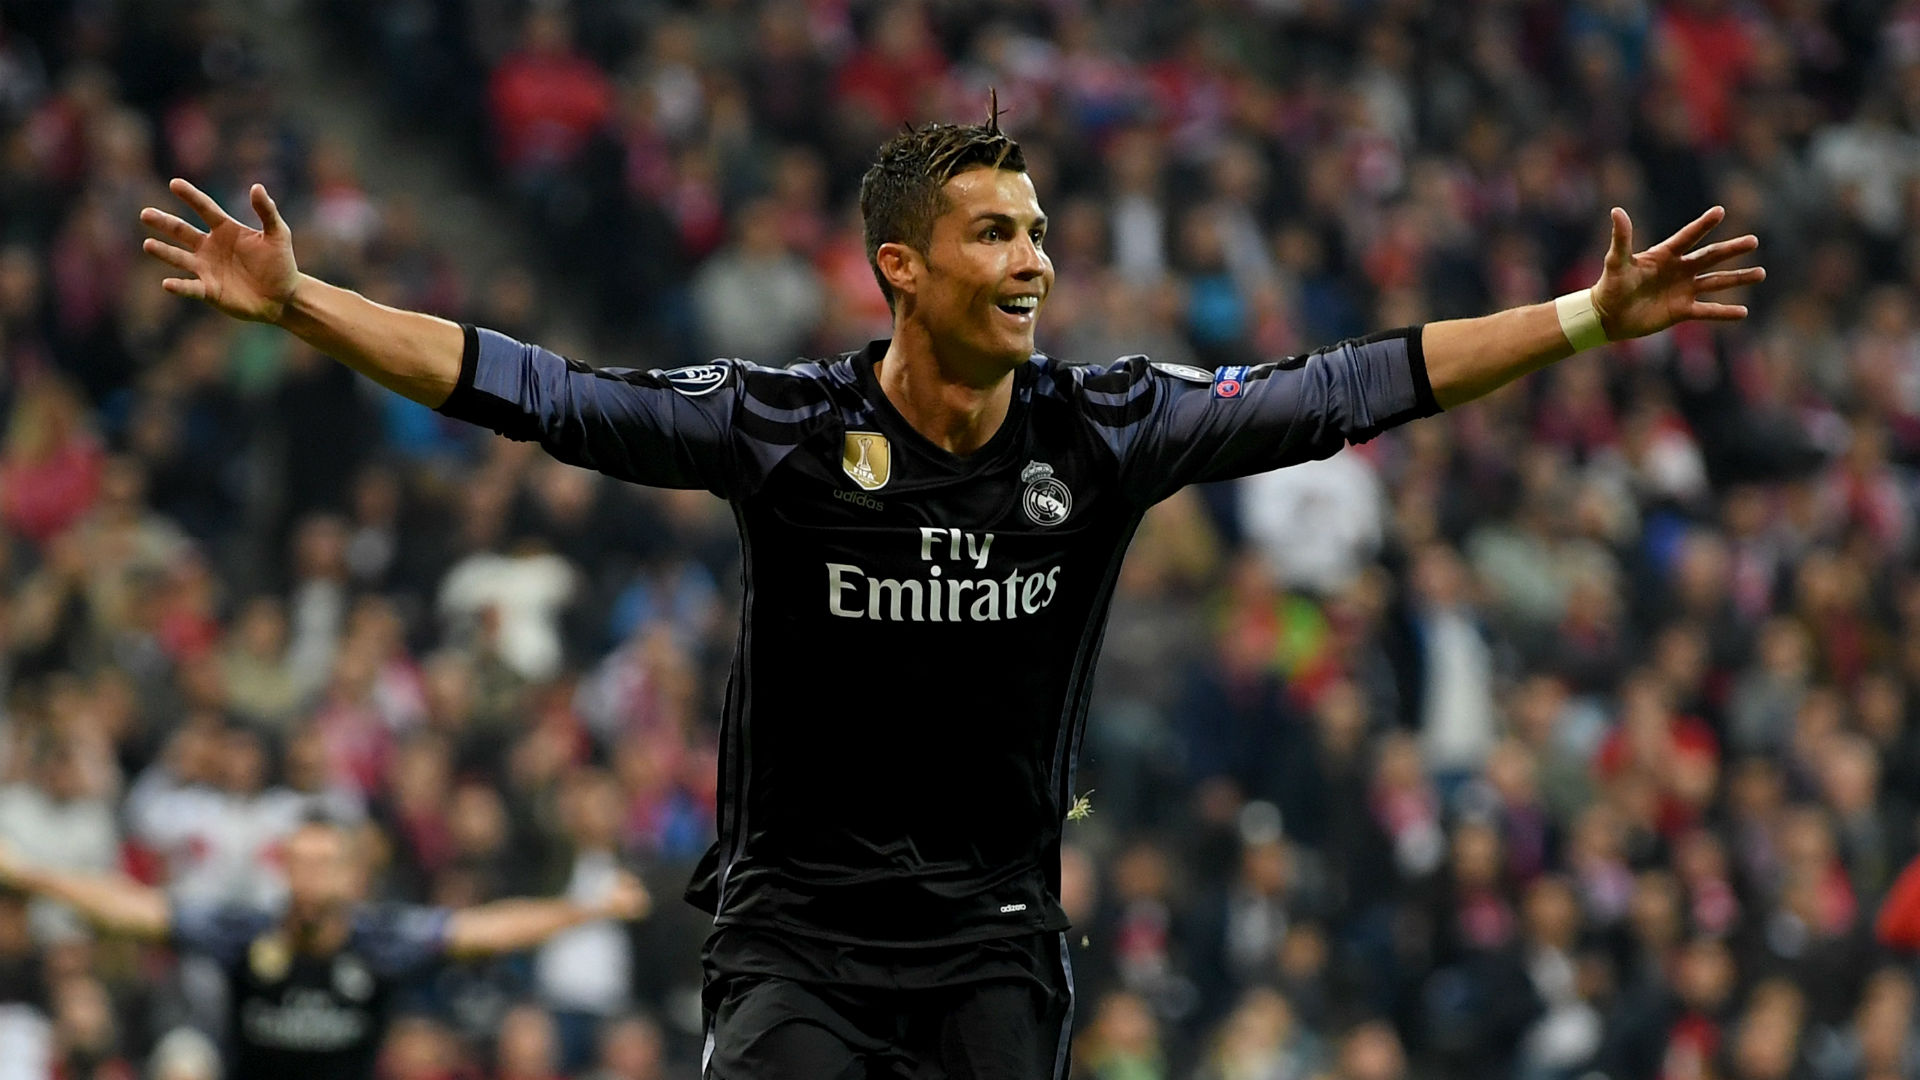 Ronaldo landmark as Madrid wins 2-1, ends Bayern record run